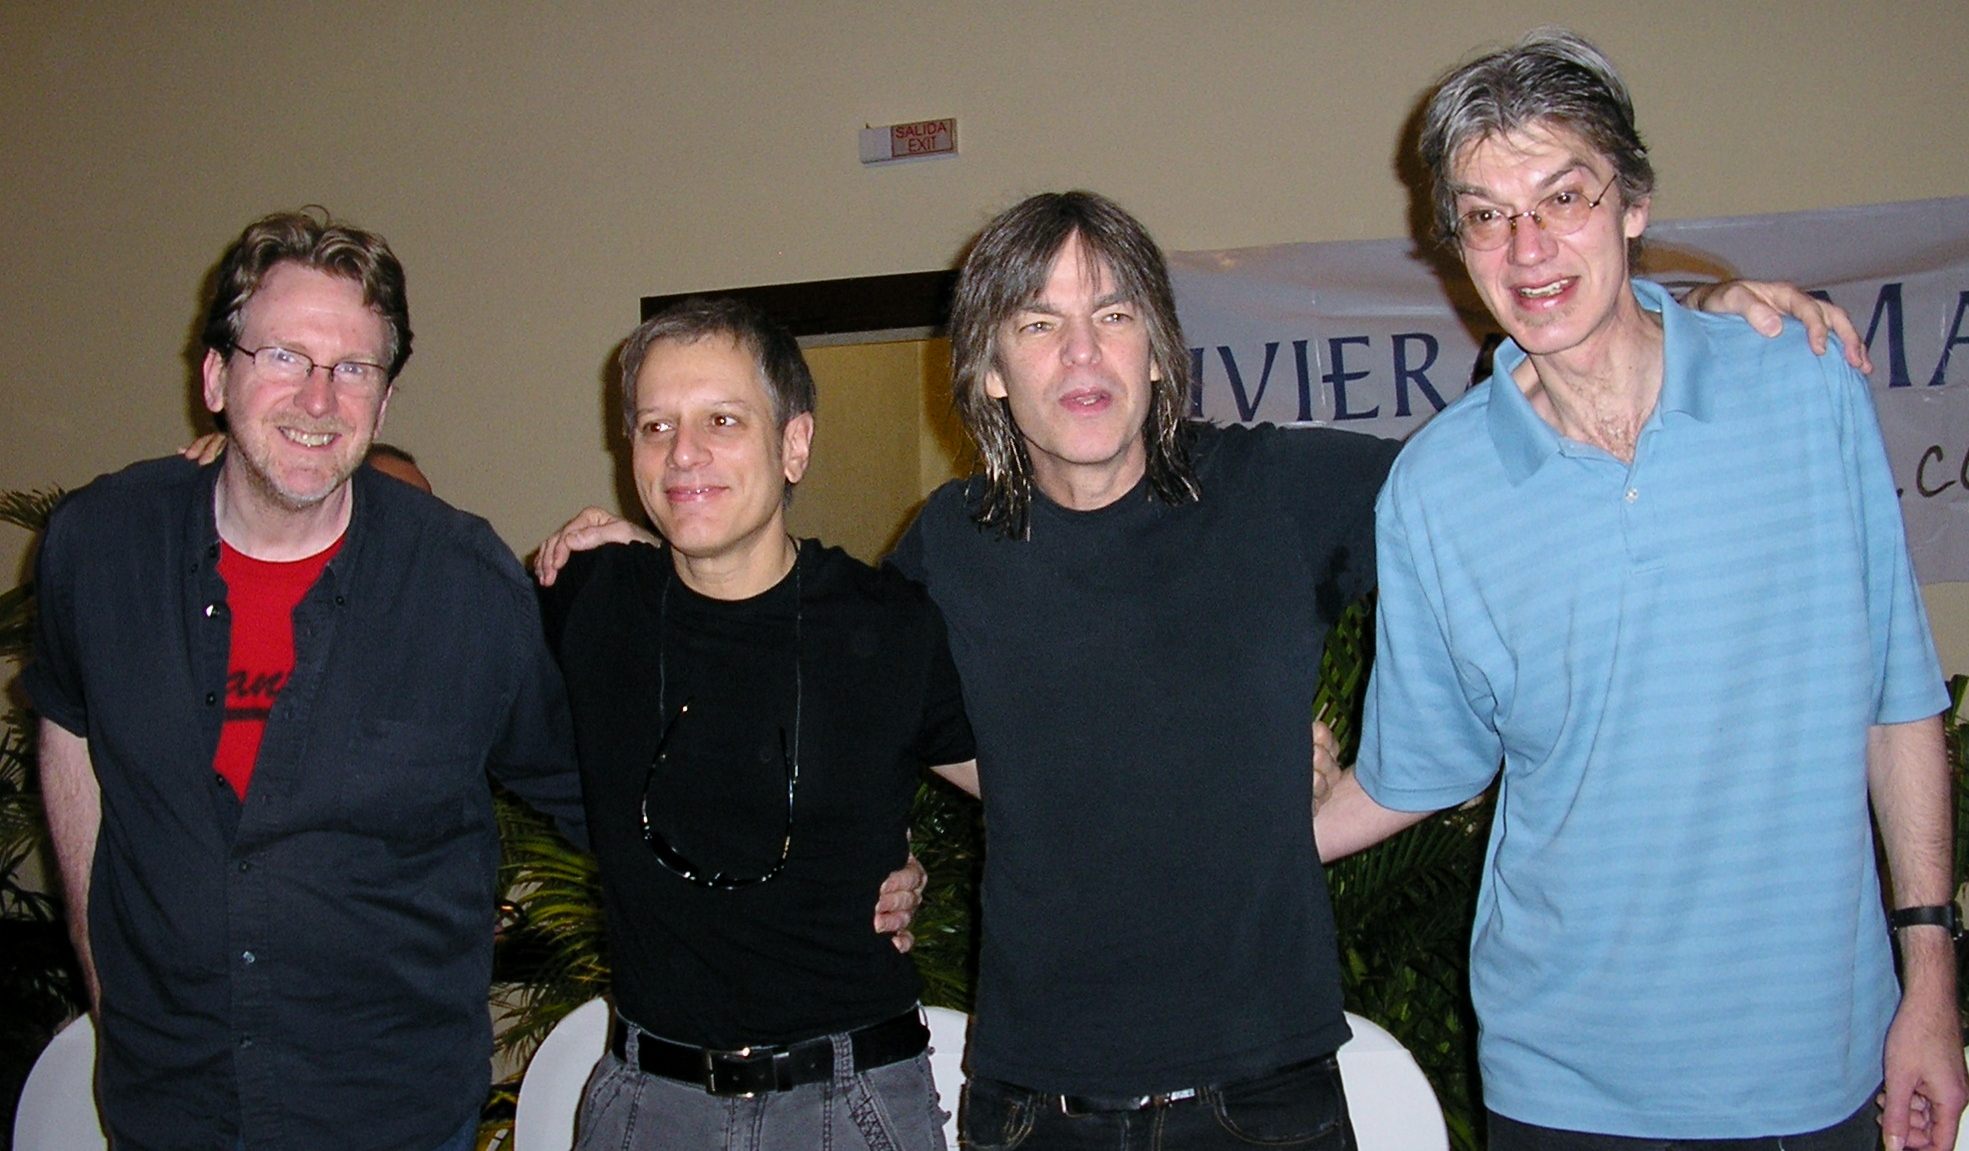 Brothers in Arms Tom Kennedy, Dave Weckl, Mike Stern and Bob Malach , Before Taking the Riviera Maya Jazz Festival Thursday Stage.